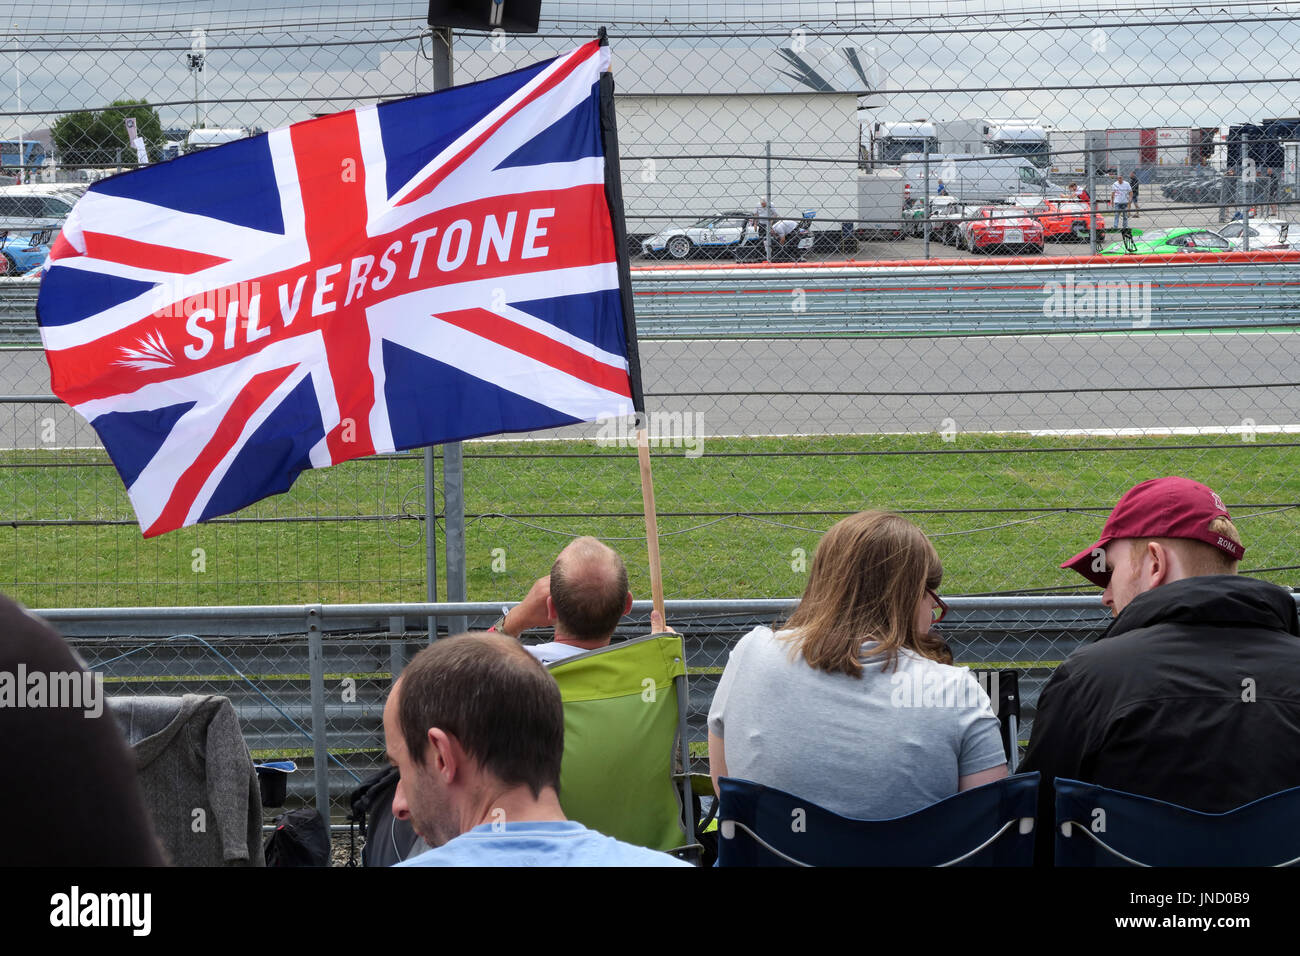 Silverstone Flag at Formula1 racing circuit - Stock Image